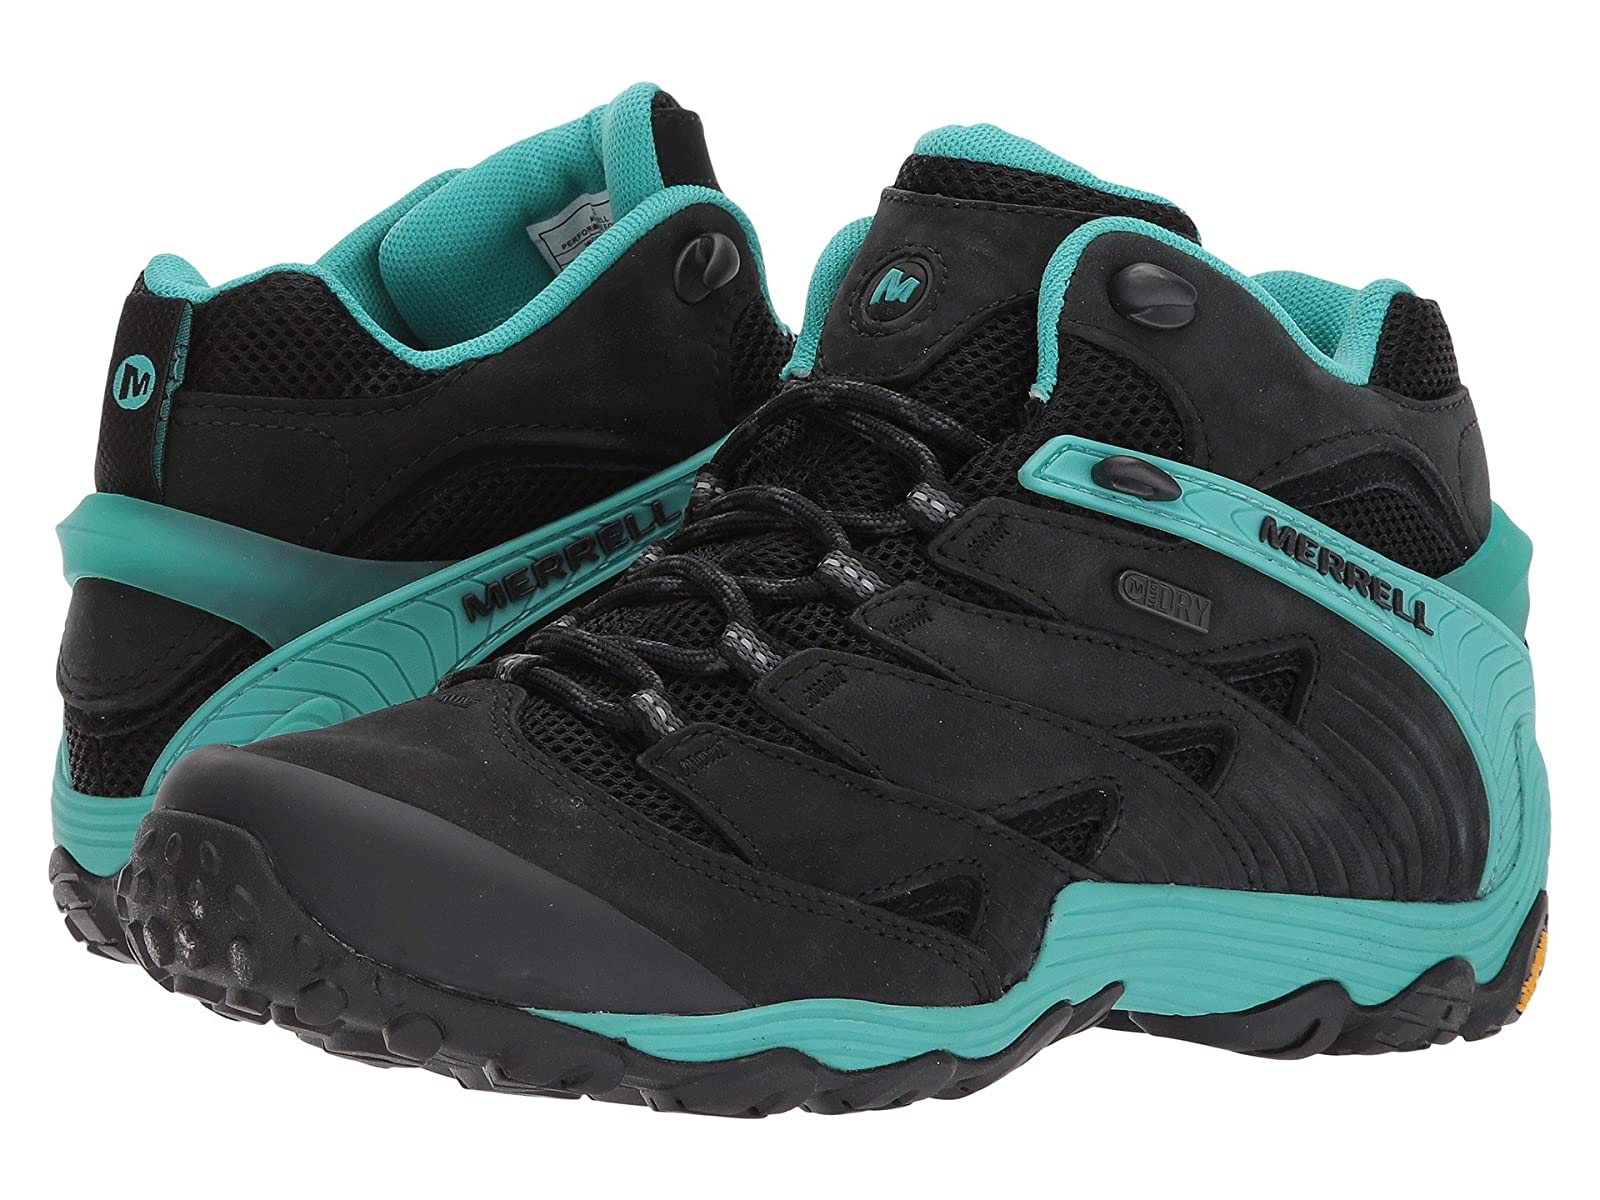 Merrell Chameleon 7 Mid WaterproofEconomical and quality shoes